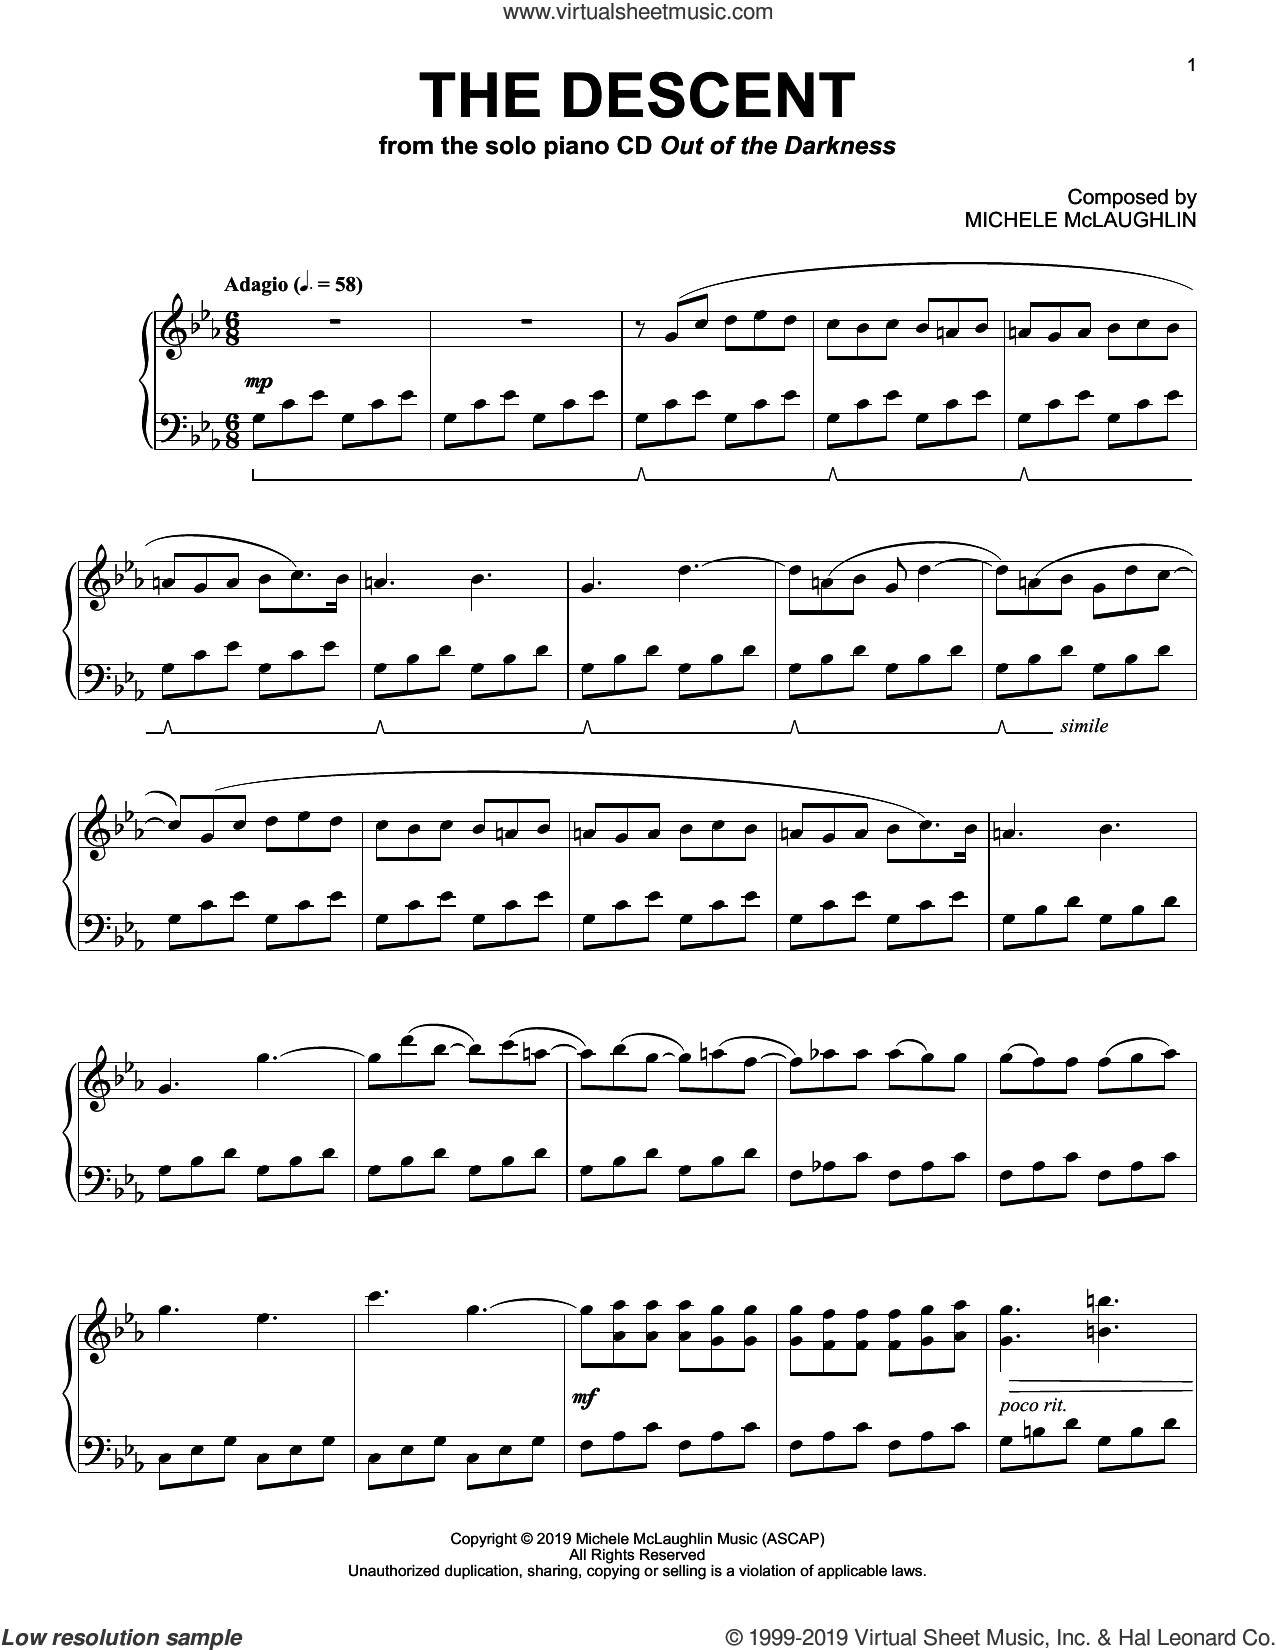 The Descent sheet music for piano solo by Michele McLaughlin, intermediate skill level